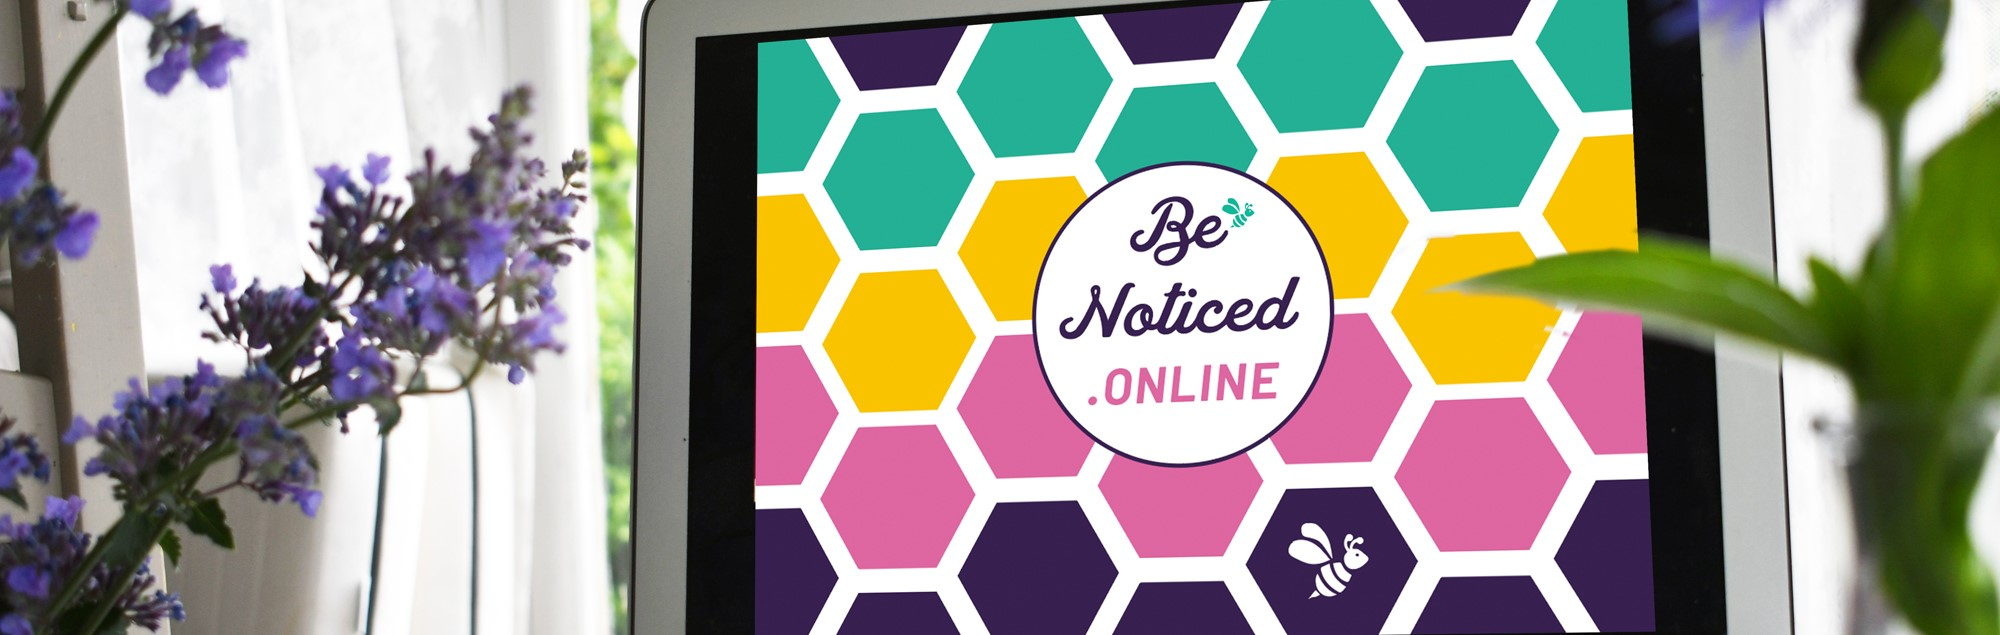 be noticed online banner